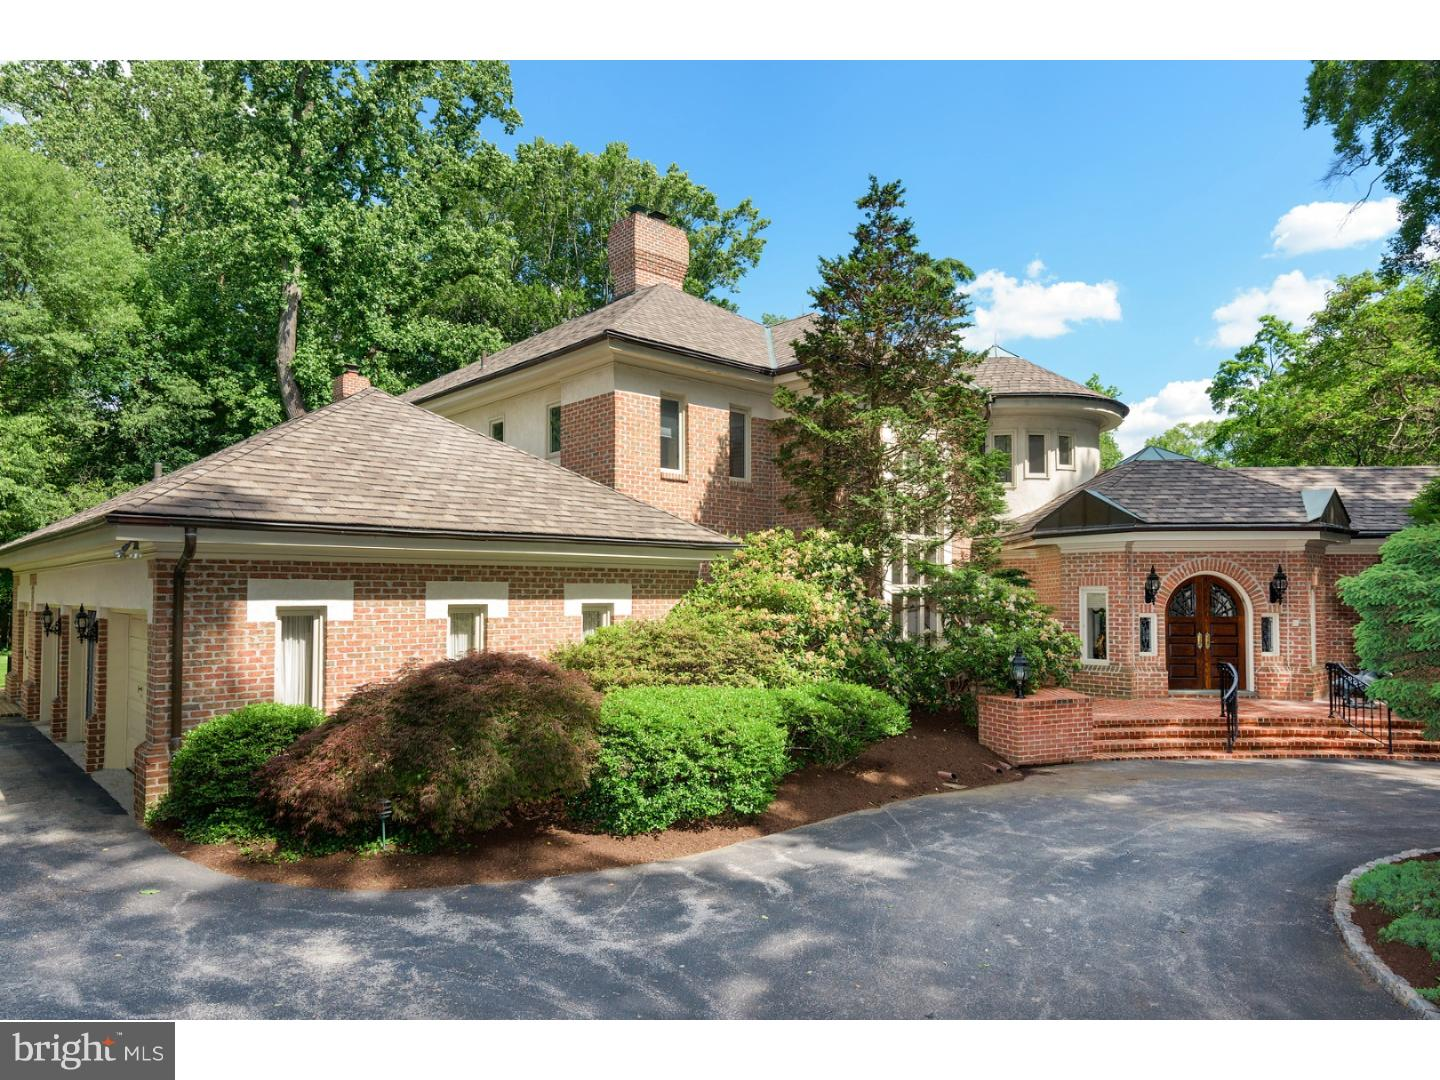 145 Cheswold Lane Haverford, PA 19041